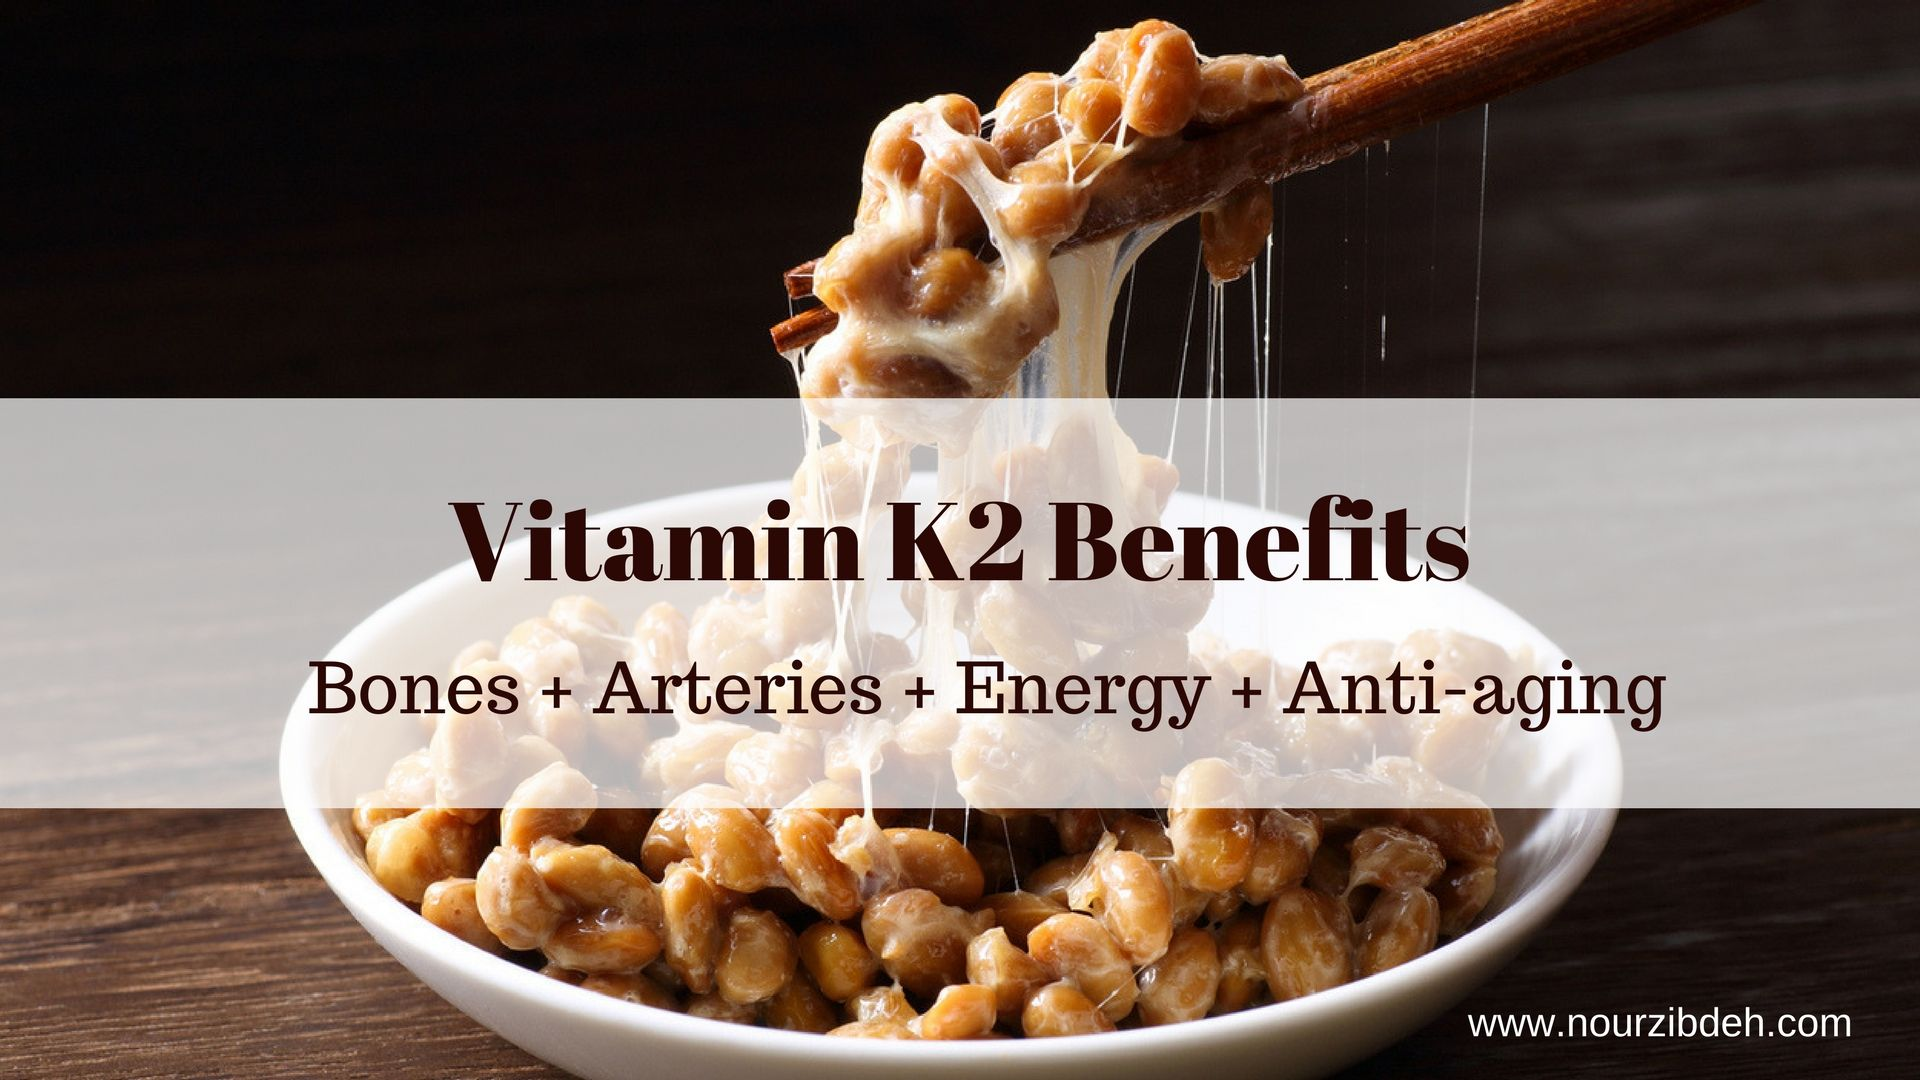 25++ Benefits of vitamin k2 for osteoporosis ideas